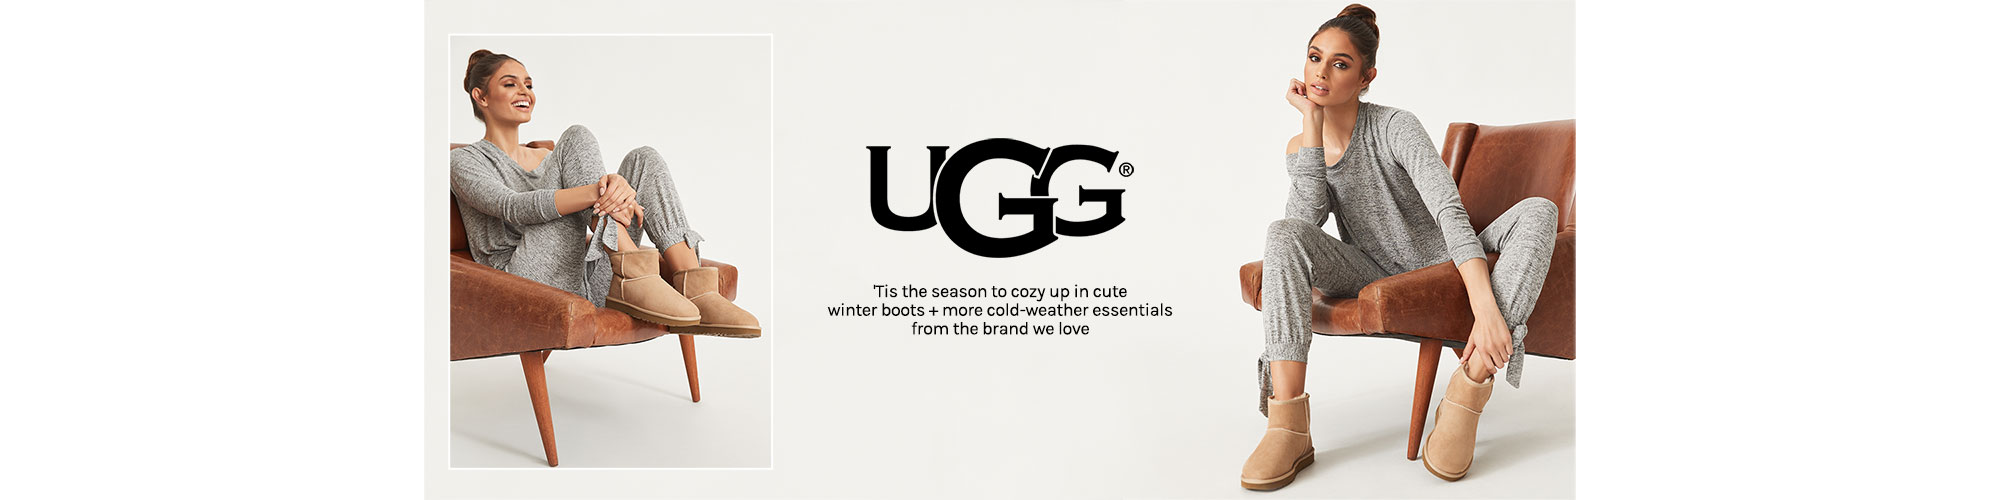 UGG.  \'Tis the season to cozy up in cute winter boots + more cold-weather essentials from the brand we love.